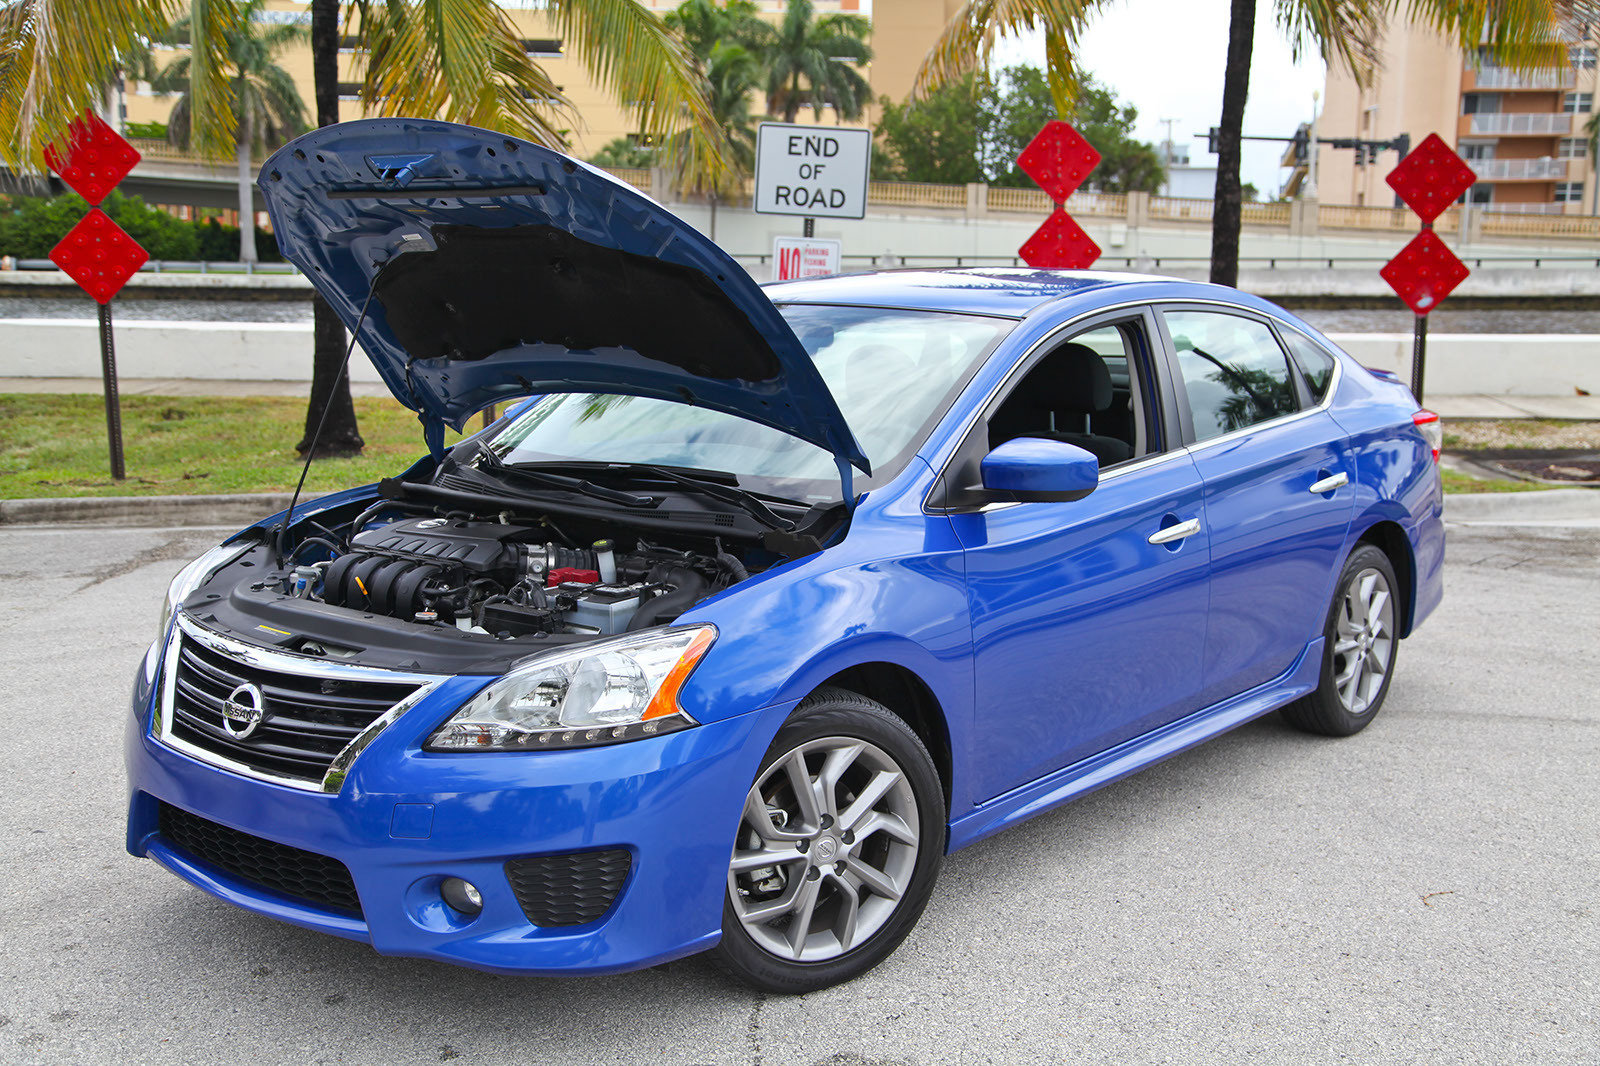 2014 nissan sentra sr picture 524544 car review top speed. Black Bedroom Furniture Sets. Home Design Ideas